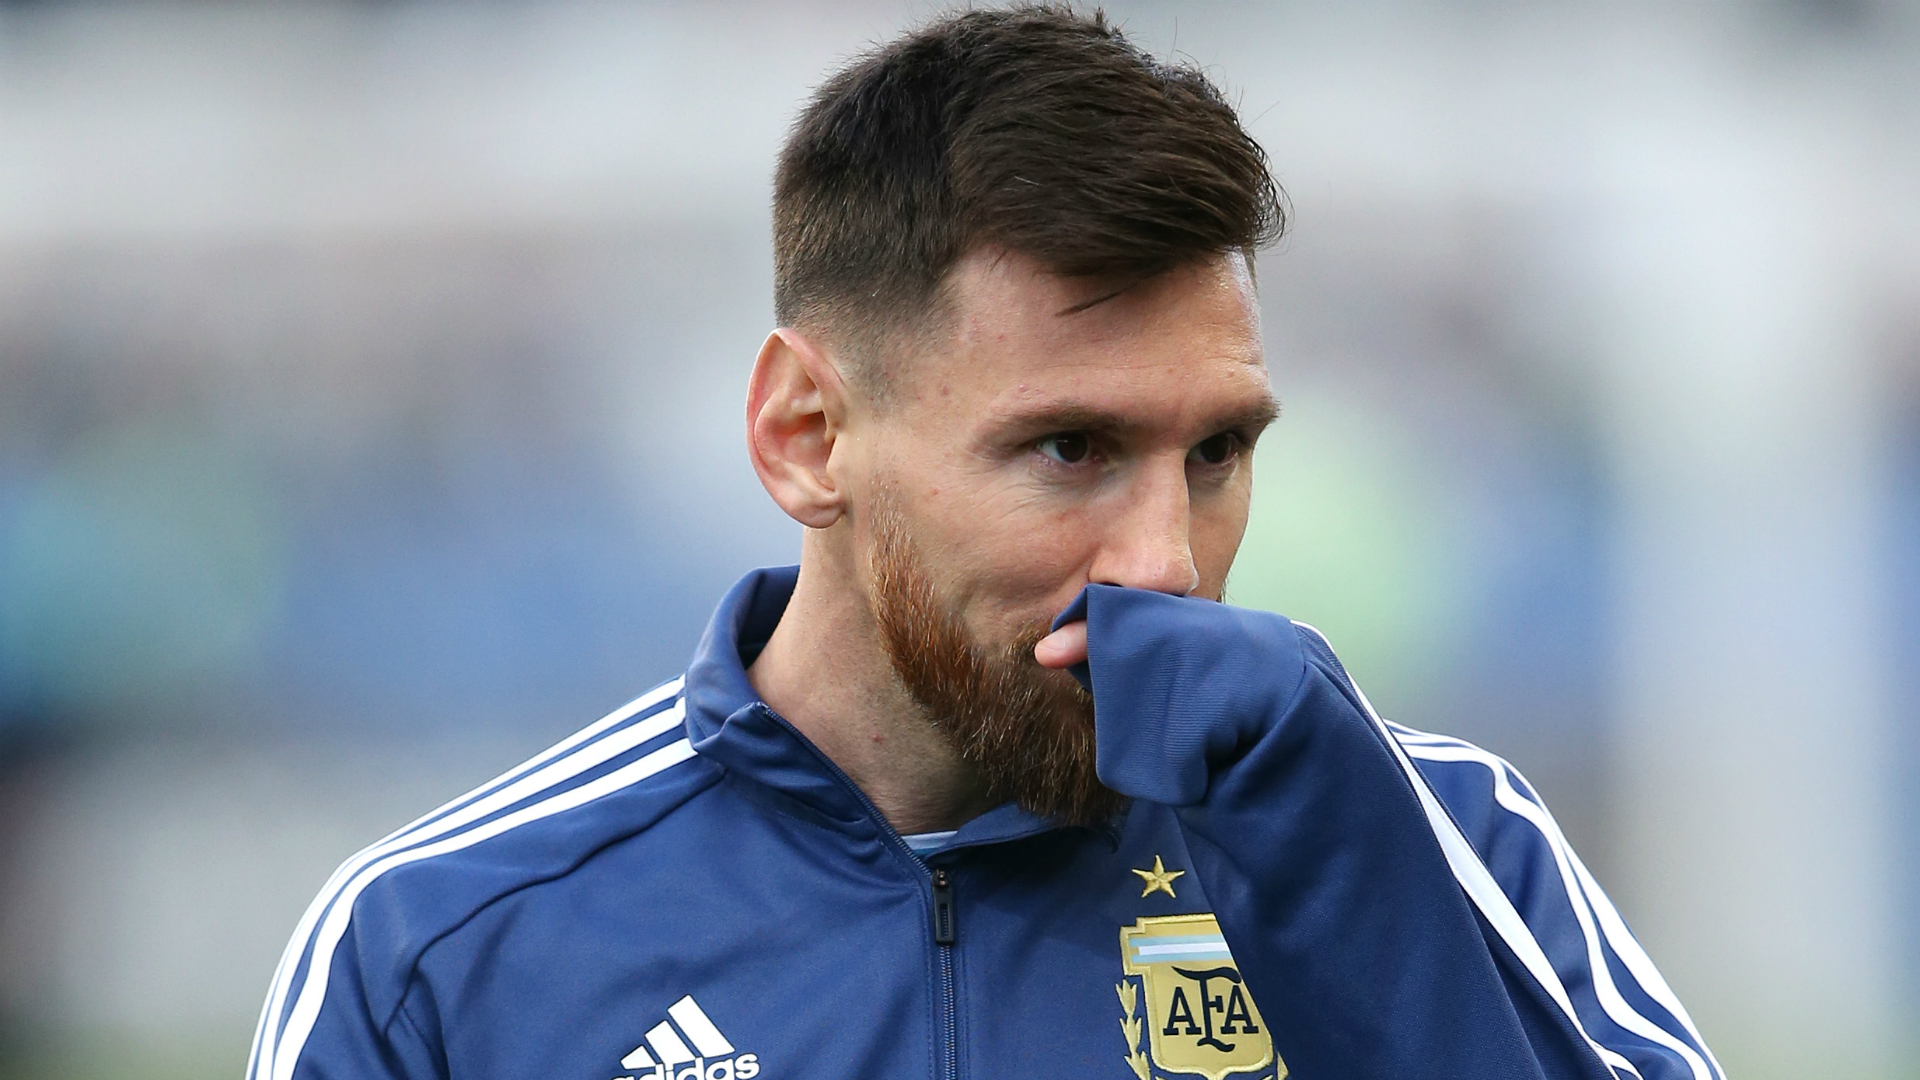 'Messi always gets the blame for Argentina' - Barca superstar's international team-mates guilty of 'hiding', says Stoichkov